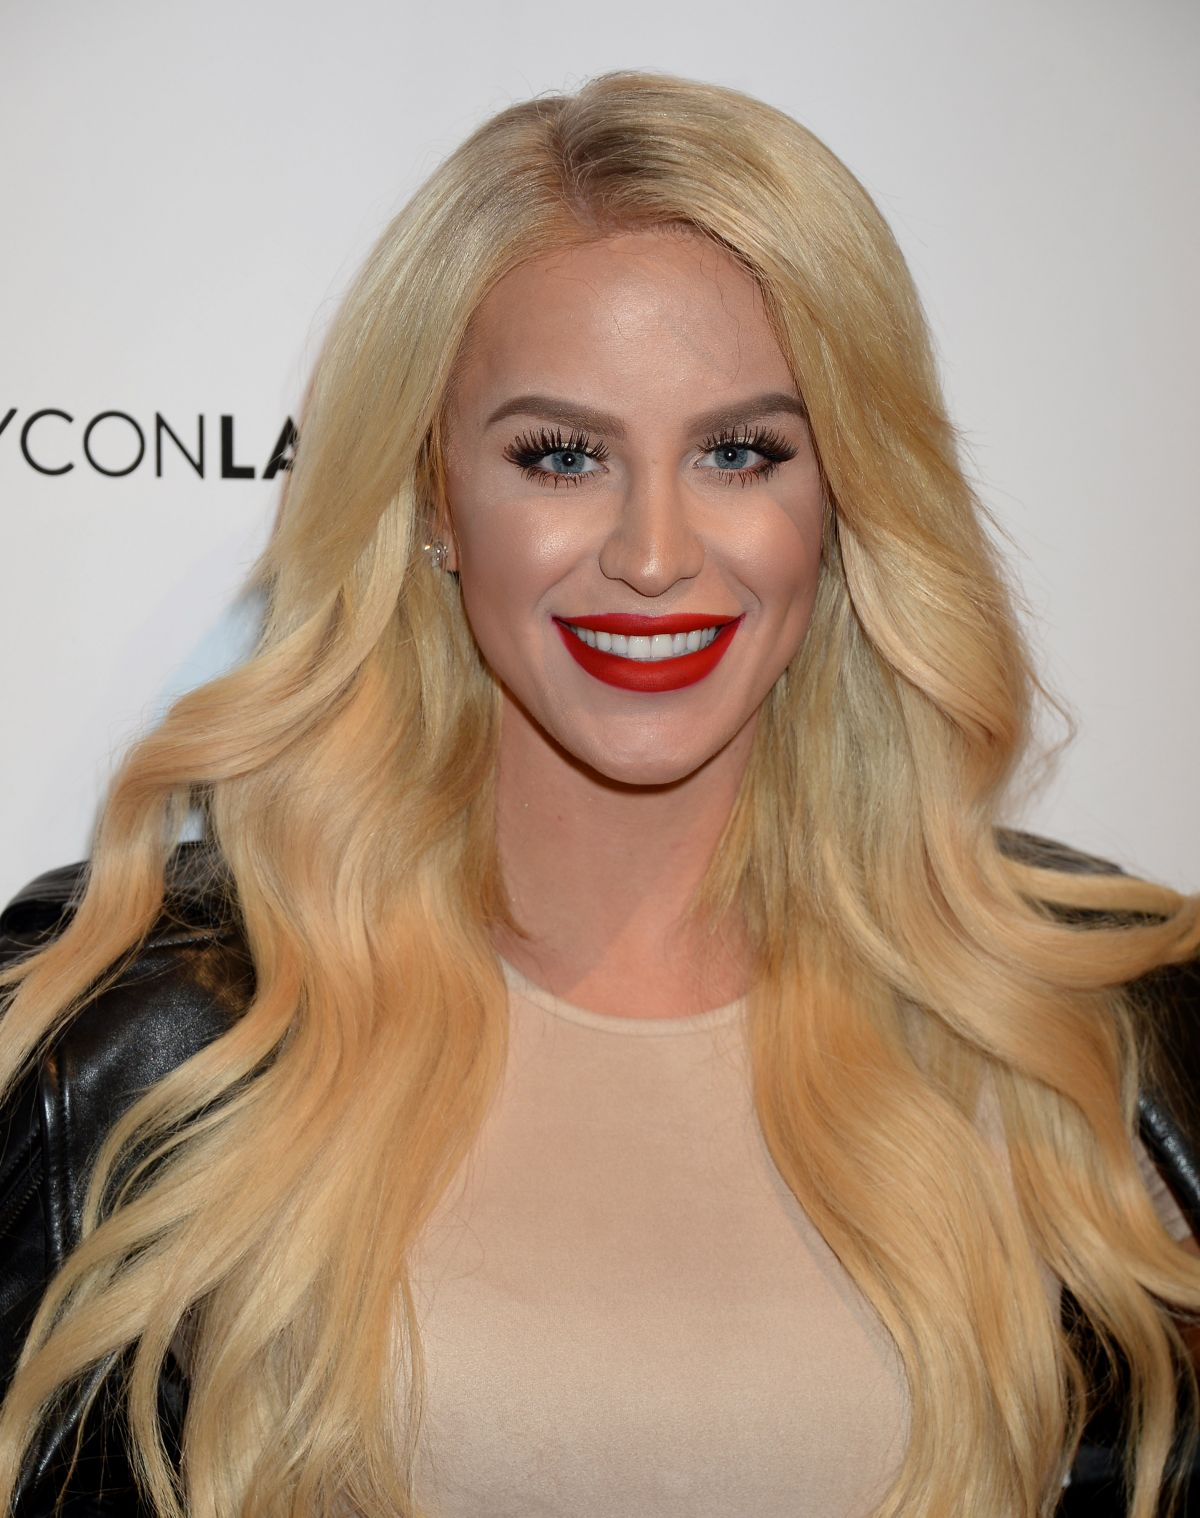 HD Photos of Gigi Gorgeous at 2016 Beautycon Festival in Los Angeles